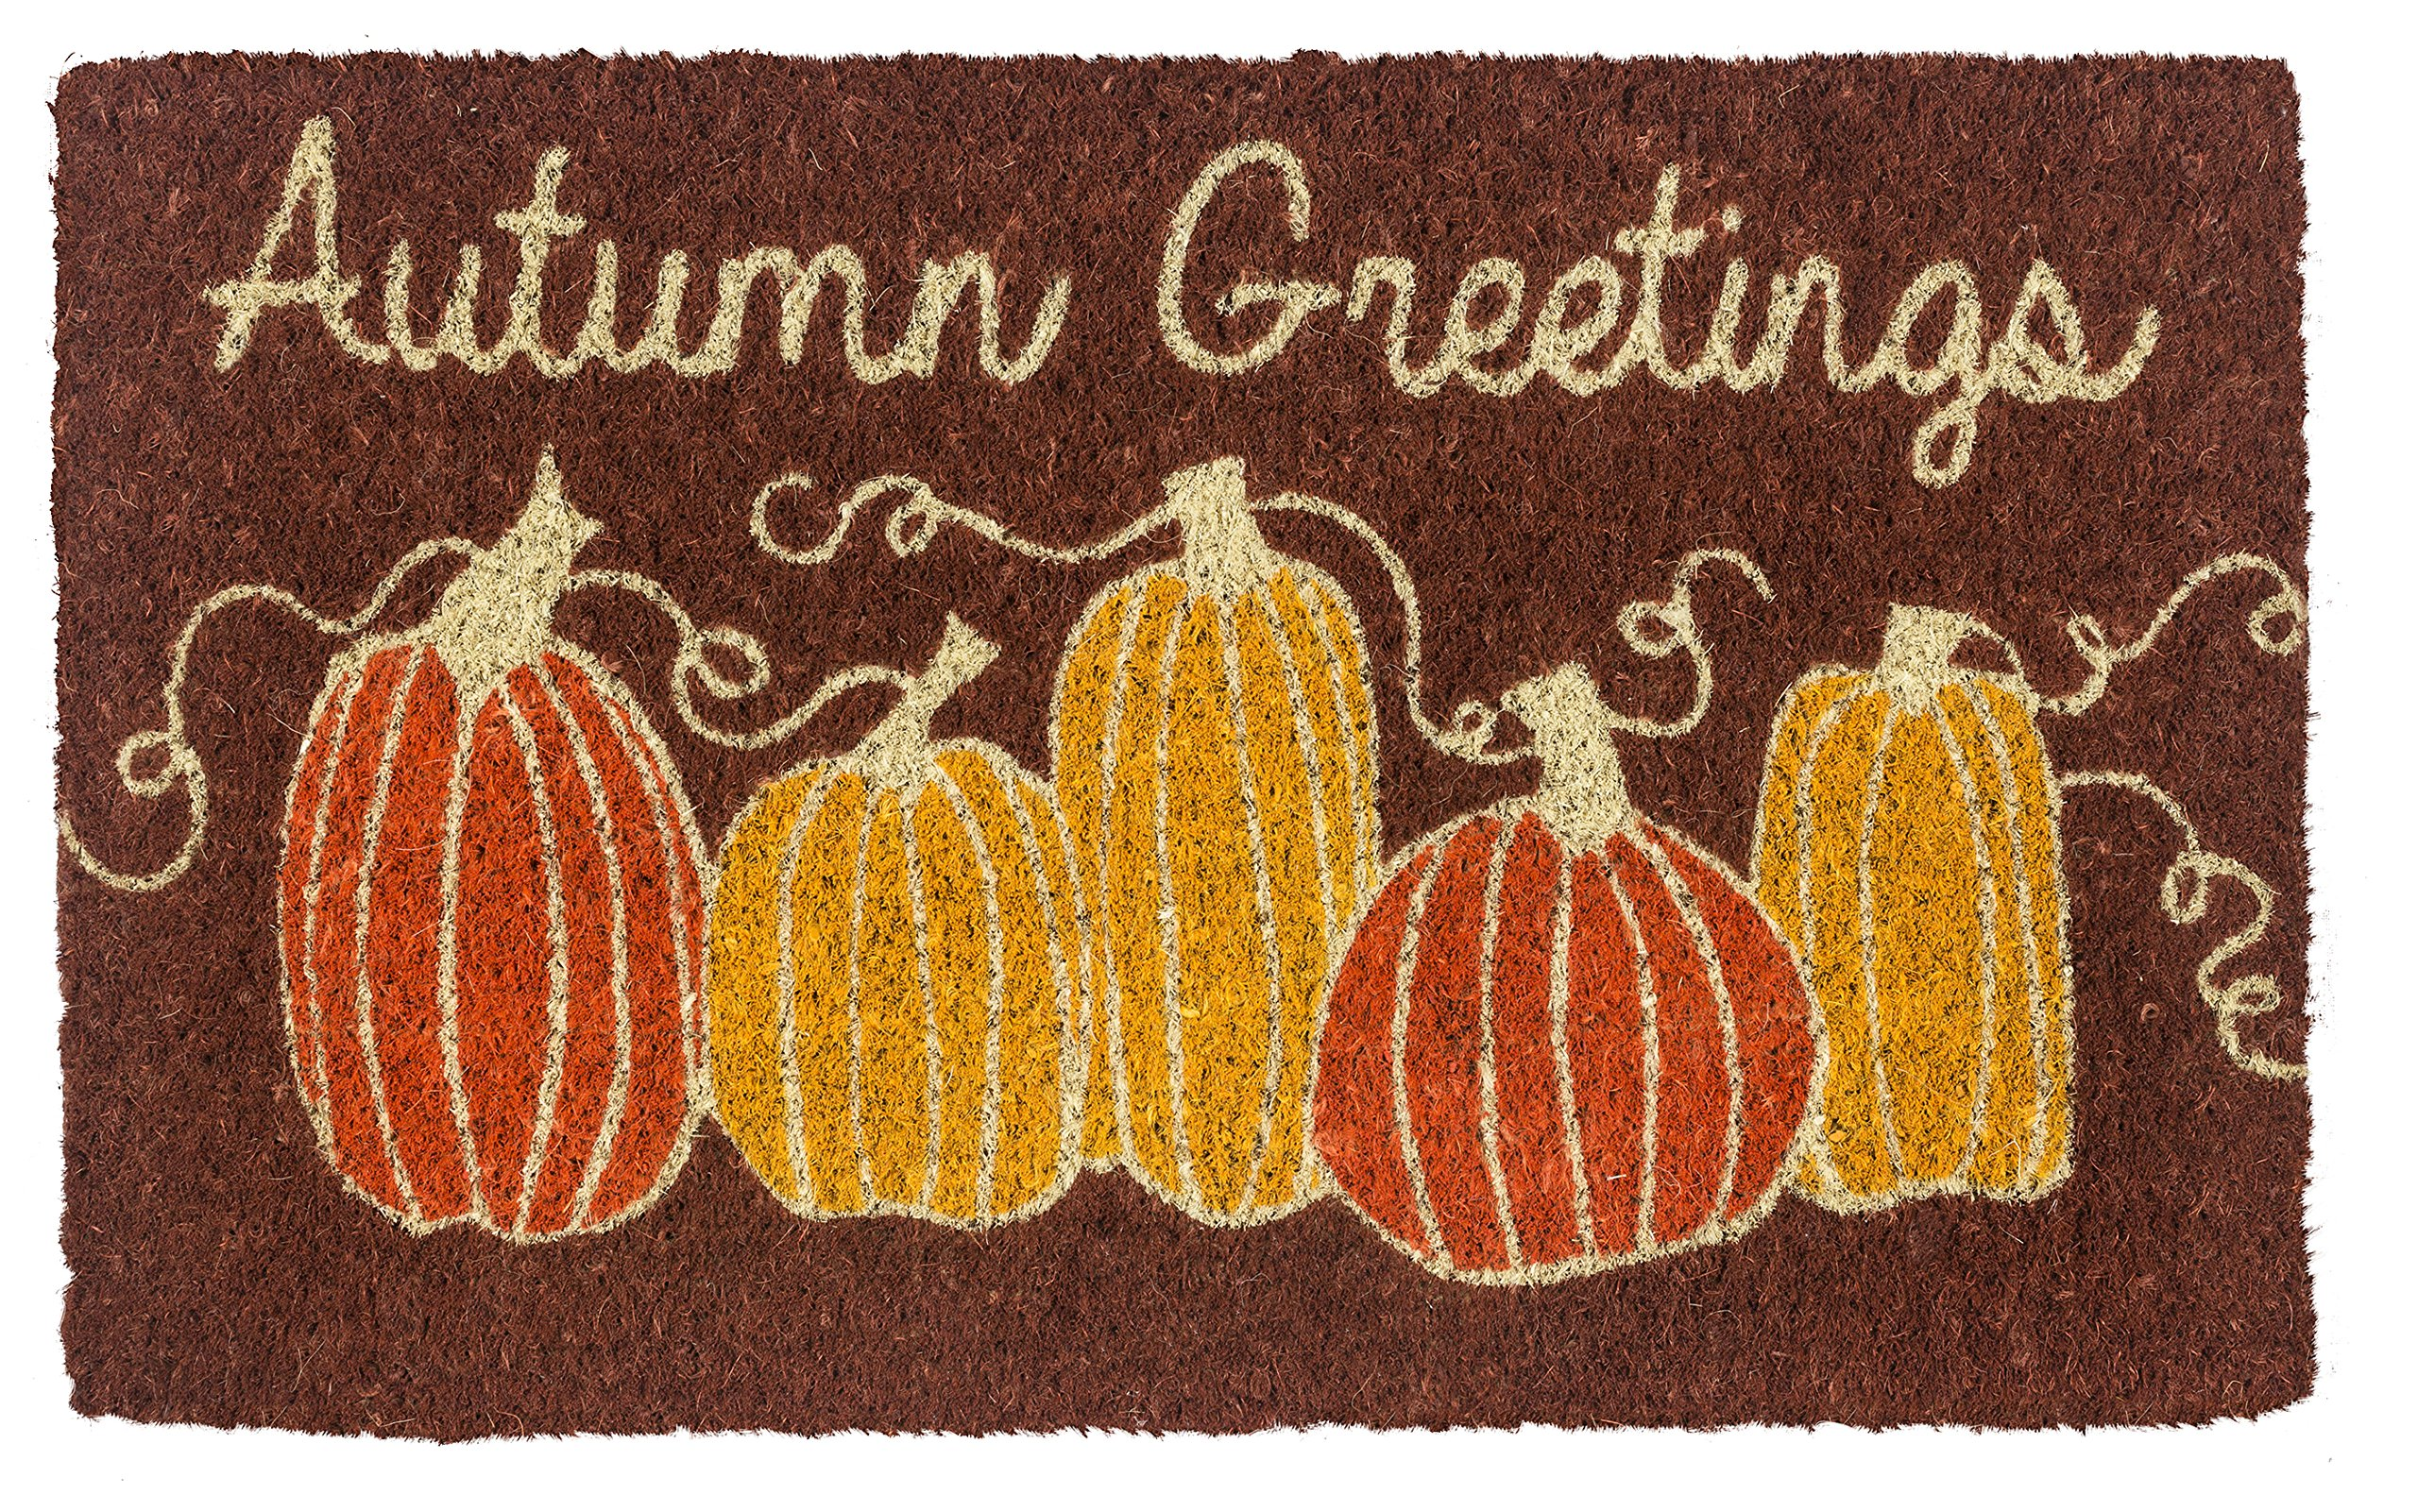 Entryways Autumn Greetings Hand-Stenciled, Handwoven All-Natural Coconut Fiber Coir Doormat, 18 inches by 30 inches by .75 inches